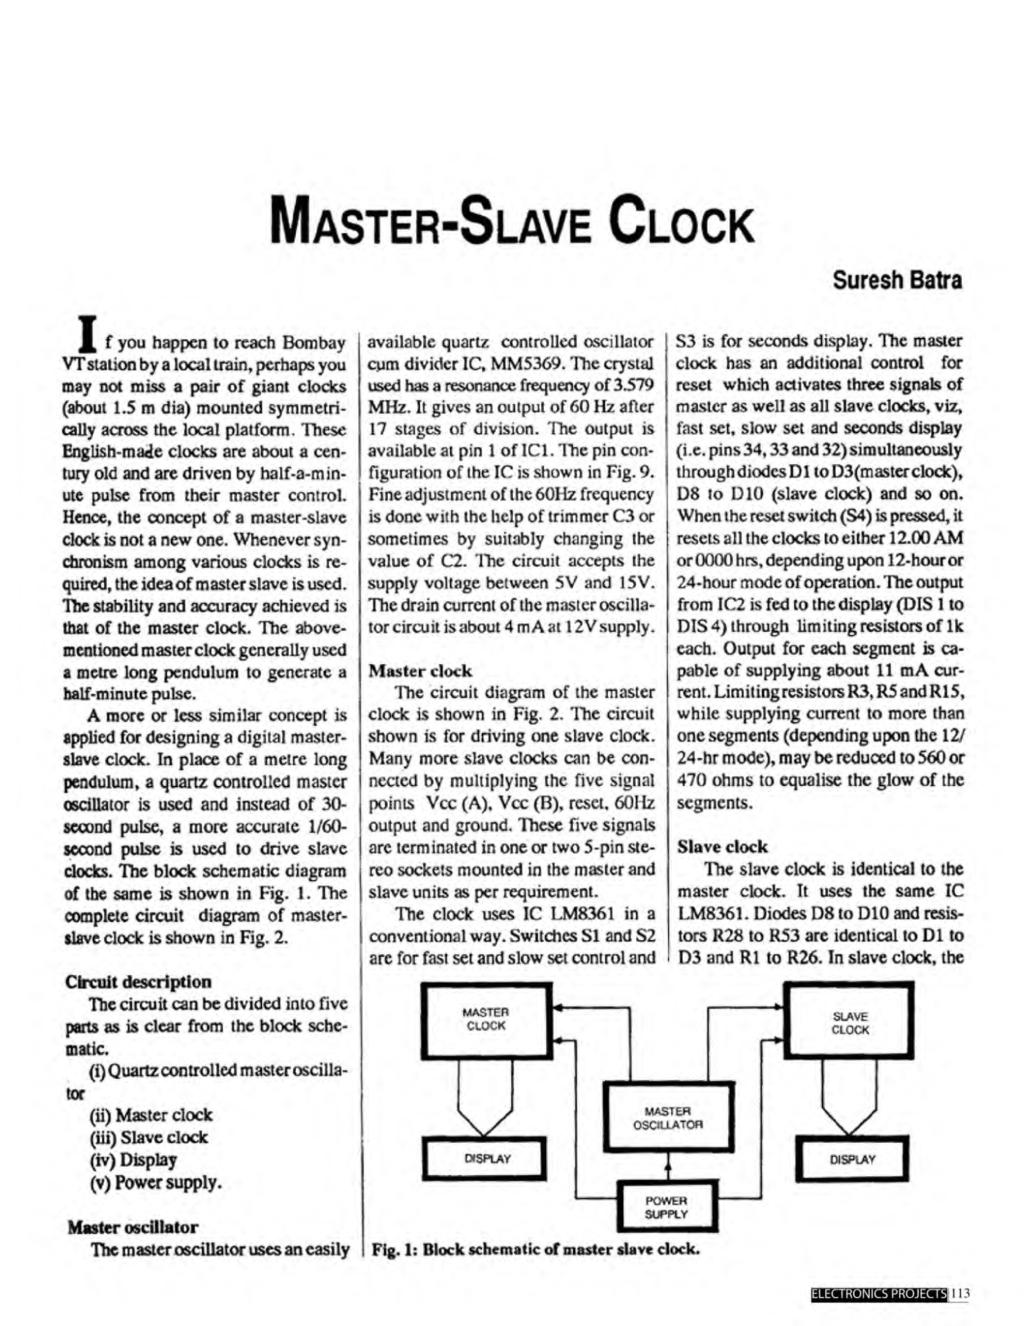 A Compilation Of 102 And Circuit Ideas For Construction Projects Balance Display By Bc147 Master Slave Clock Suresh Batra I F You Happen To Reach Bombay Vt Station